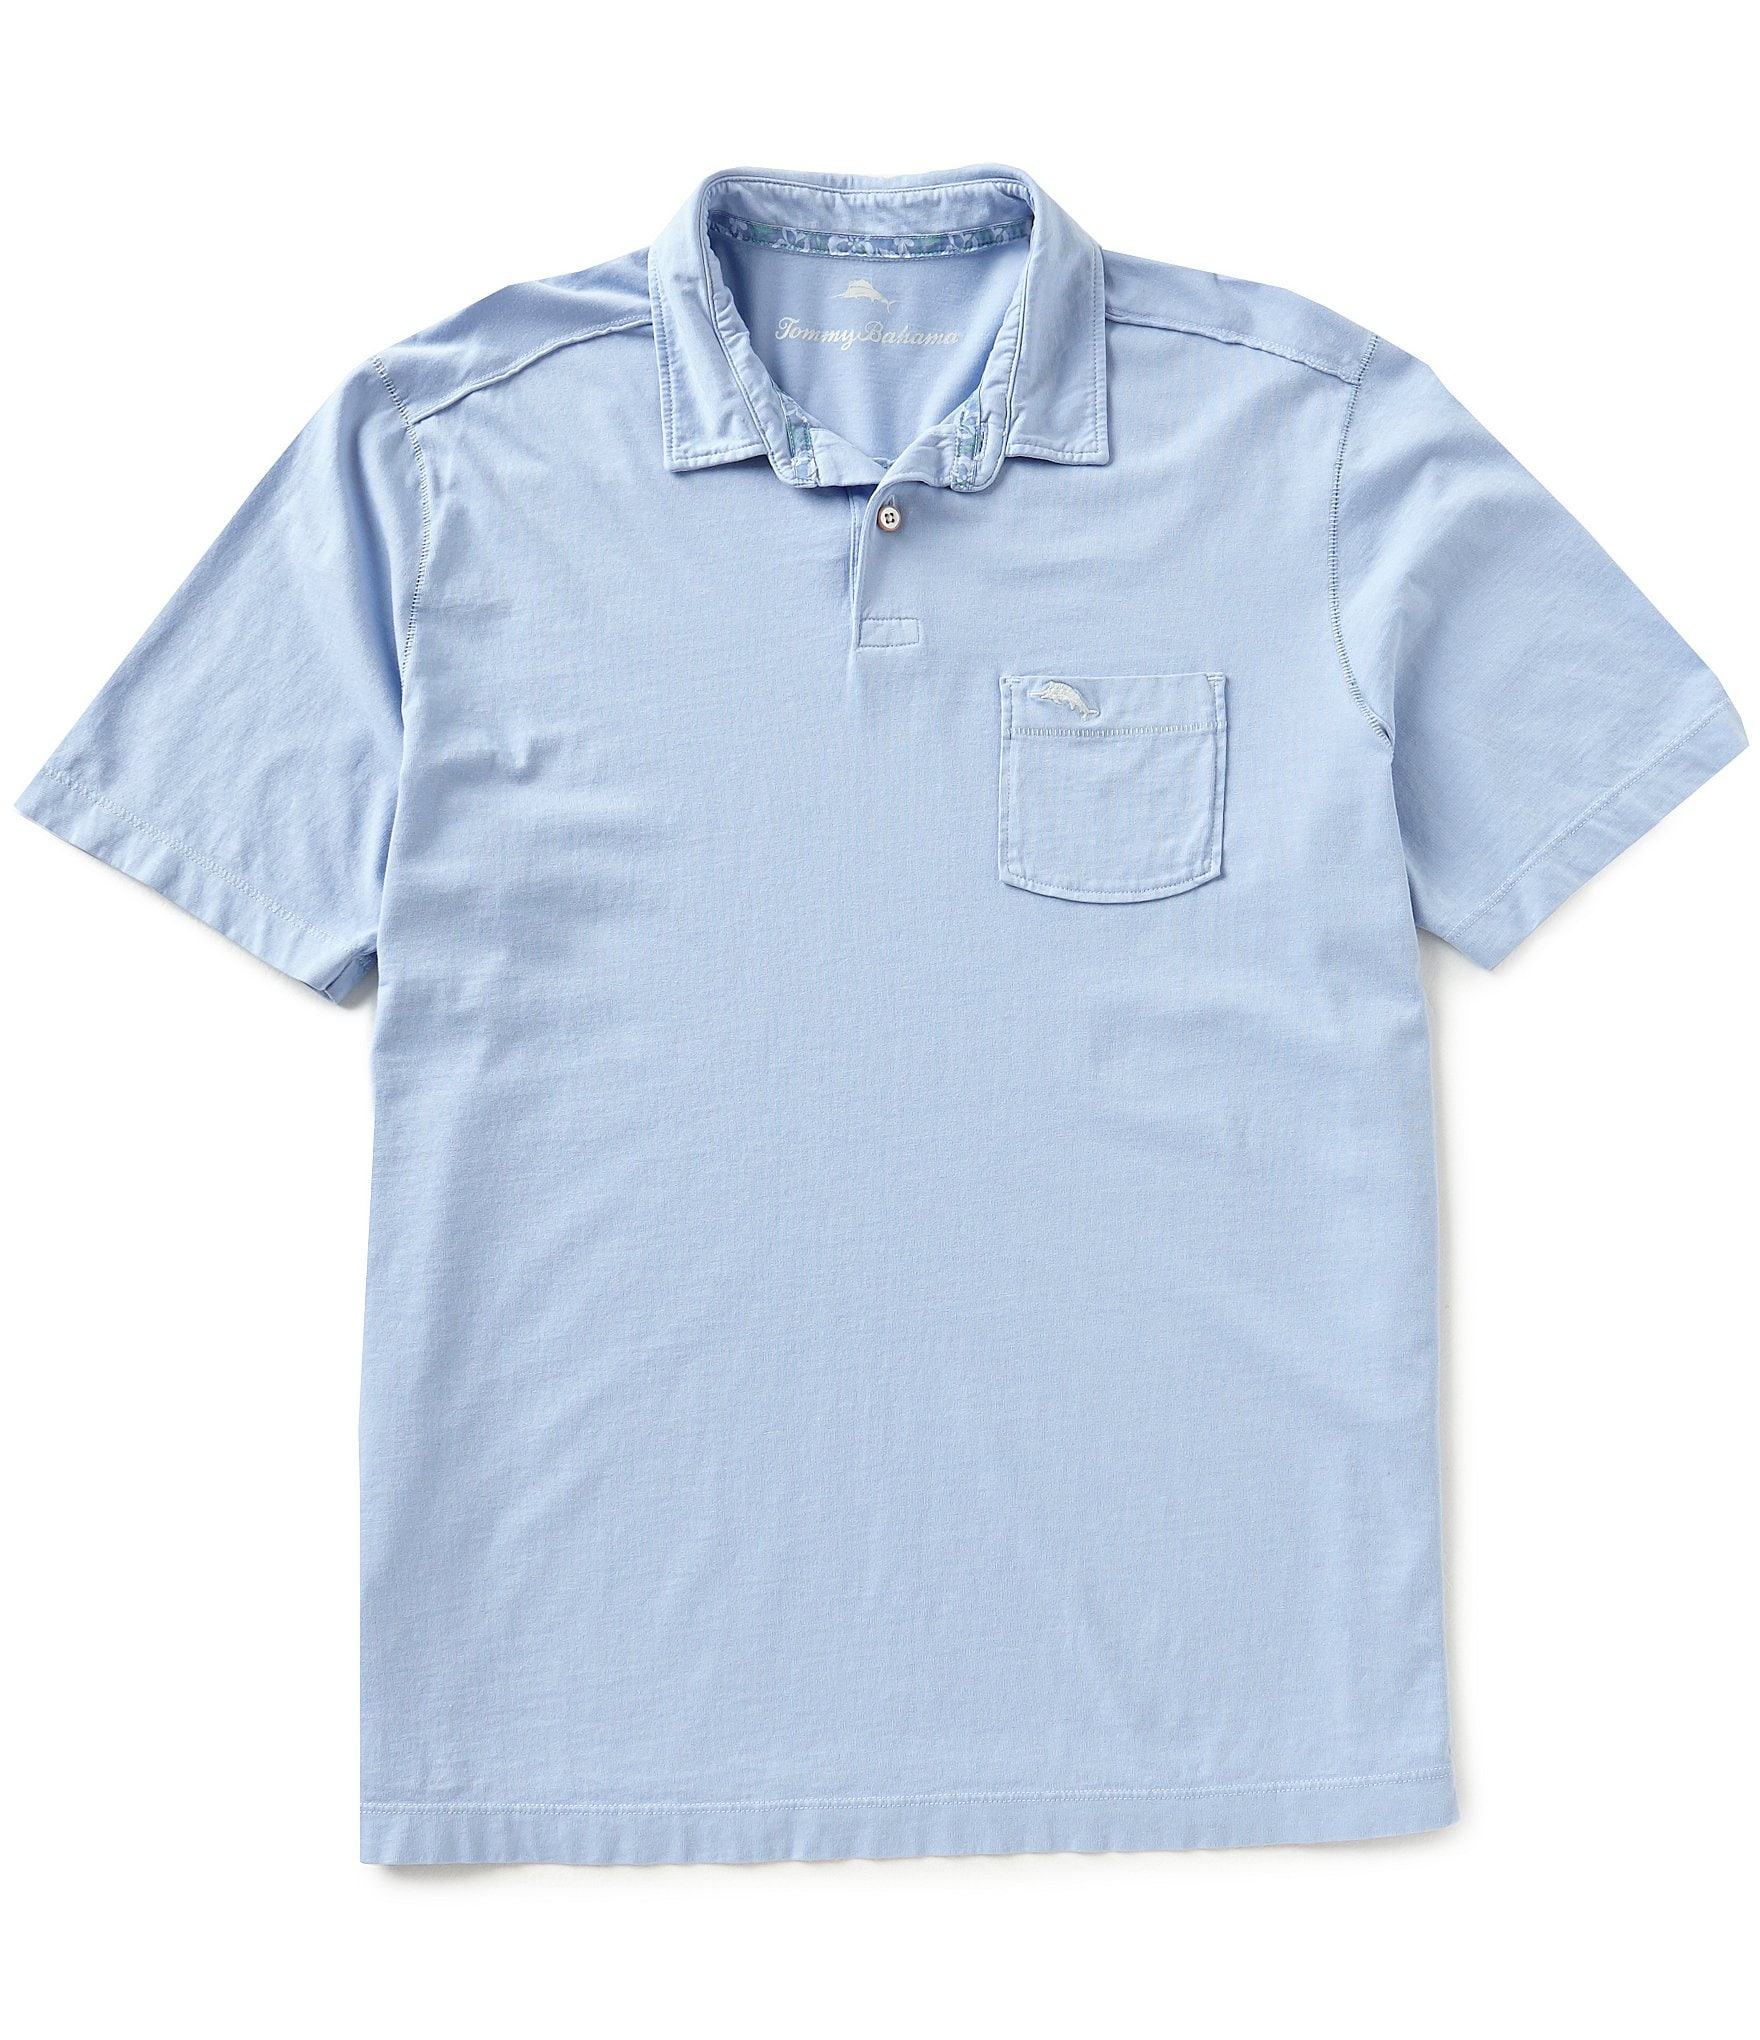 Tommy bahama short sleeve bahama reef polo shirt dillards for Tommy bahama polo shirts on sale